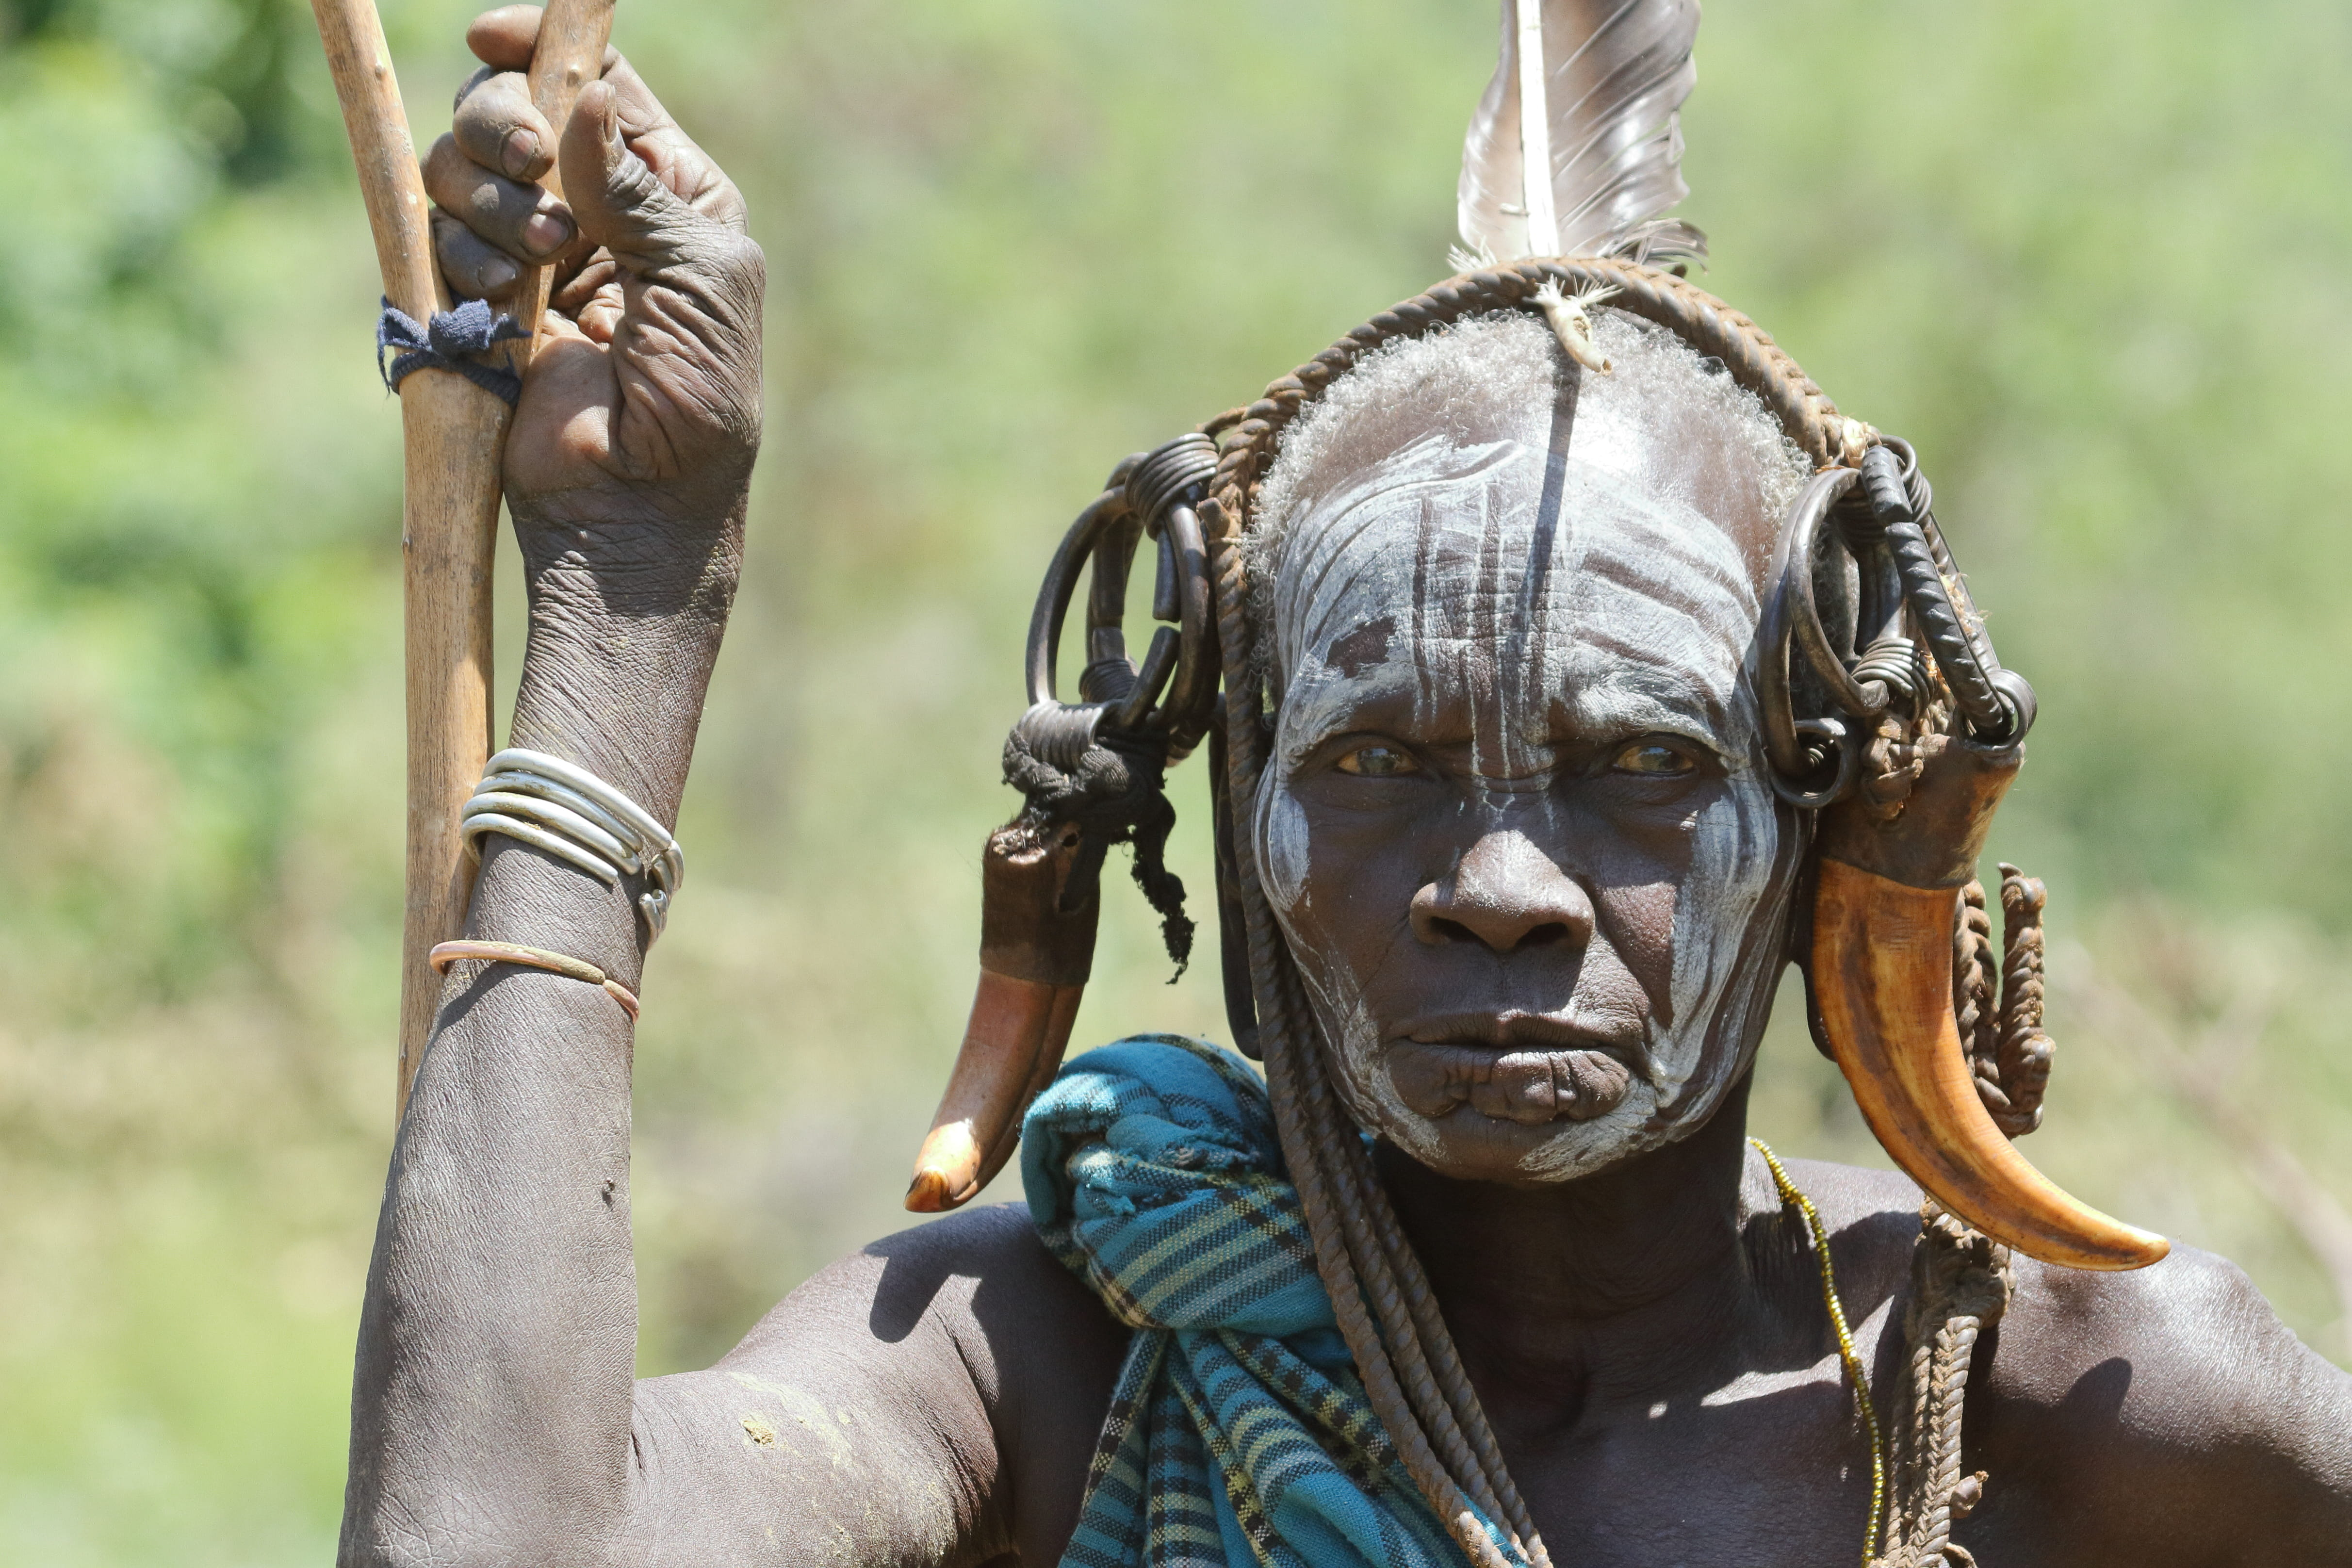 The incredible tribes of the Omo Valley